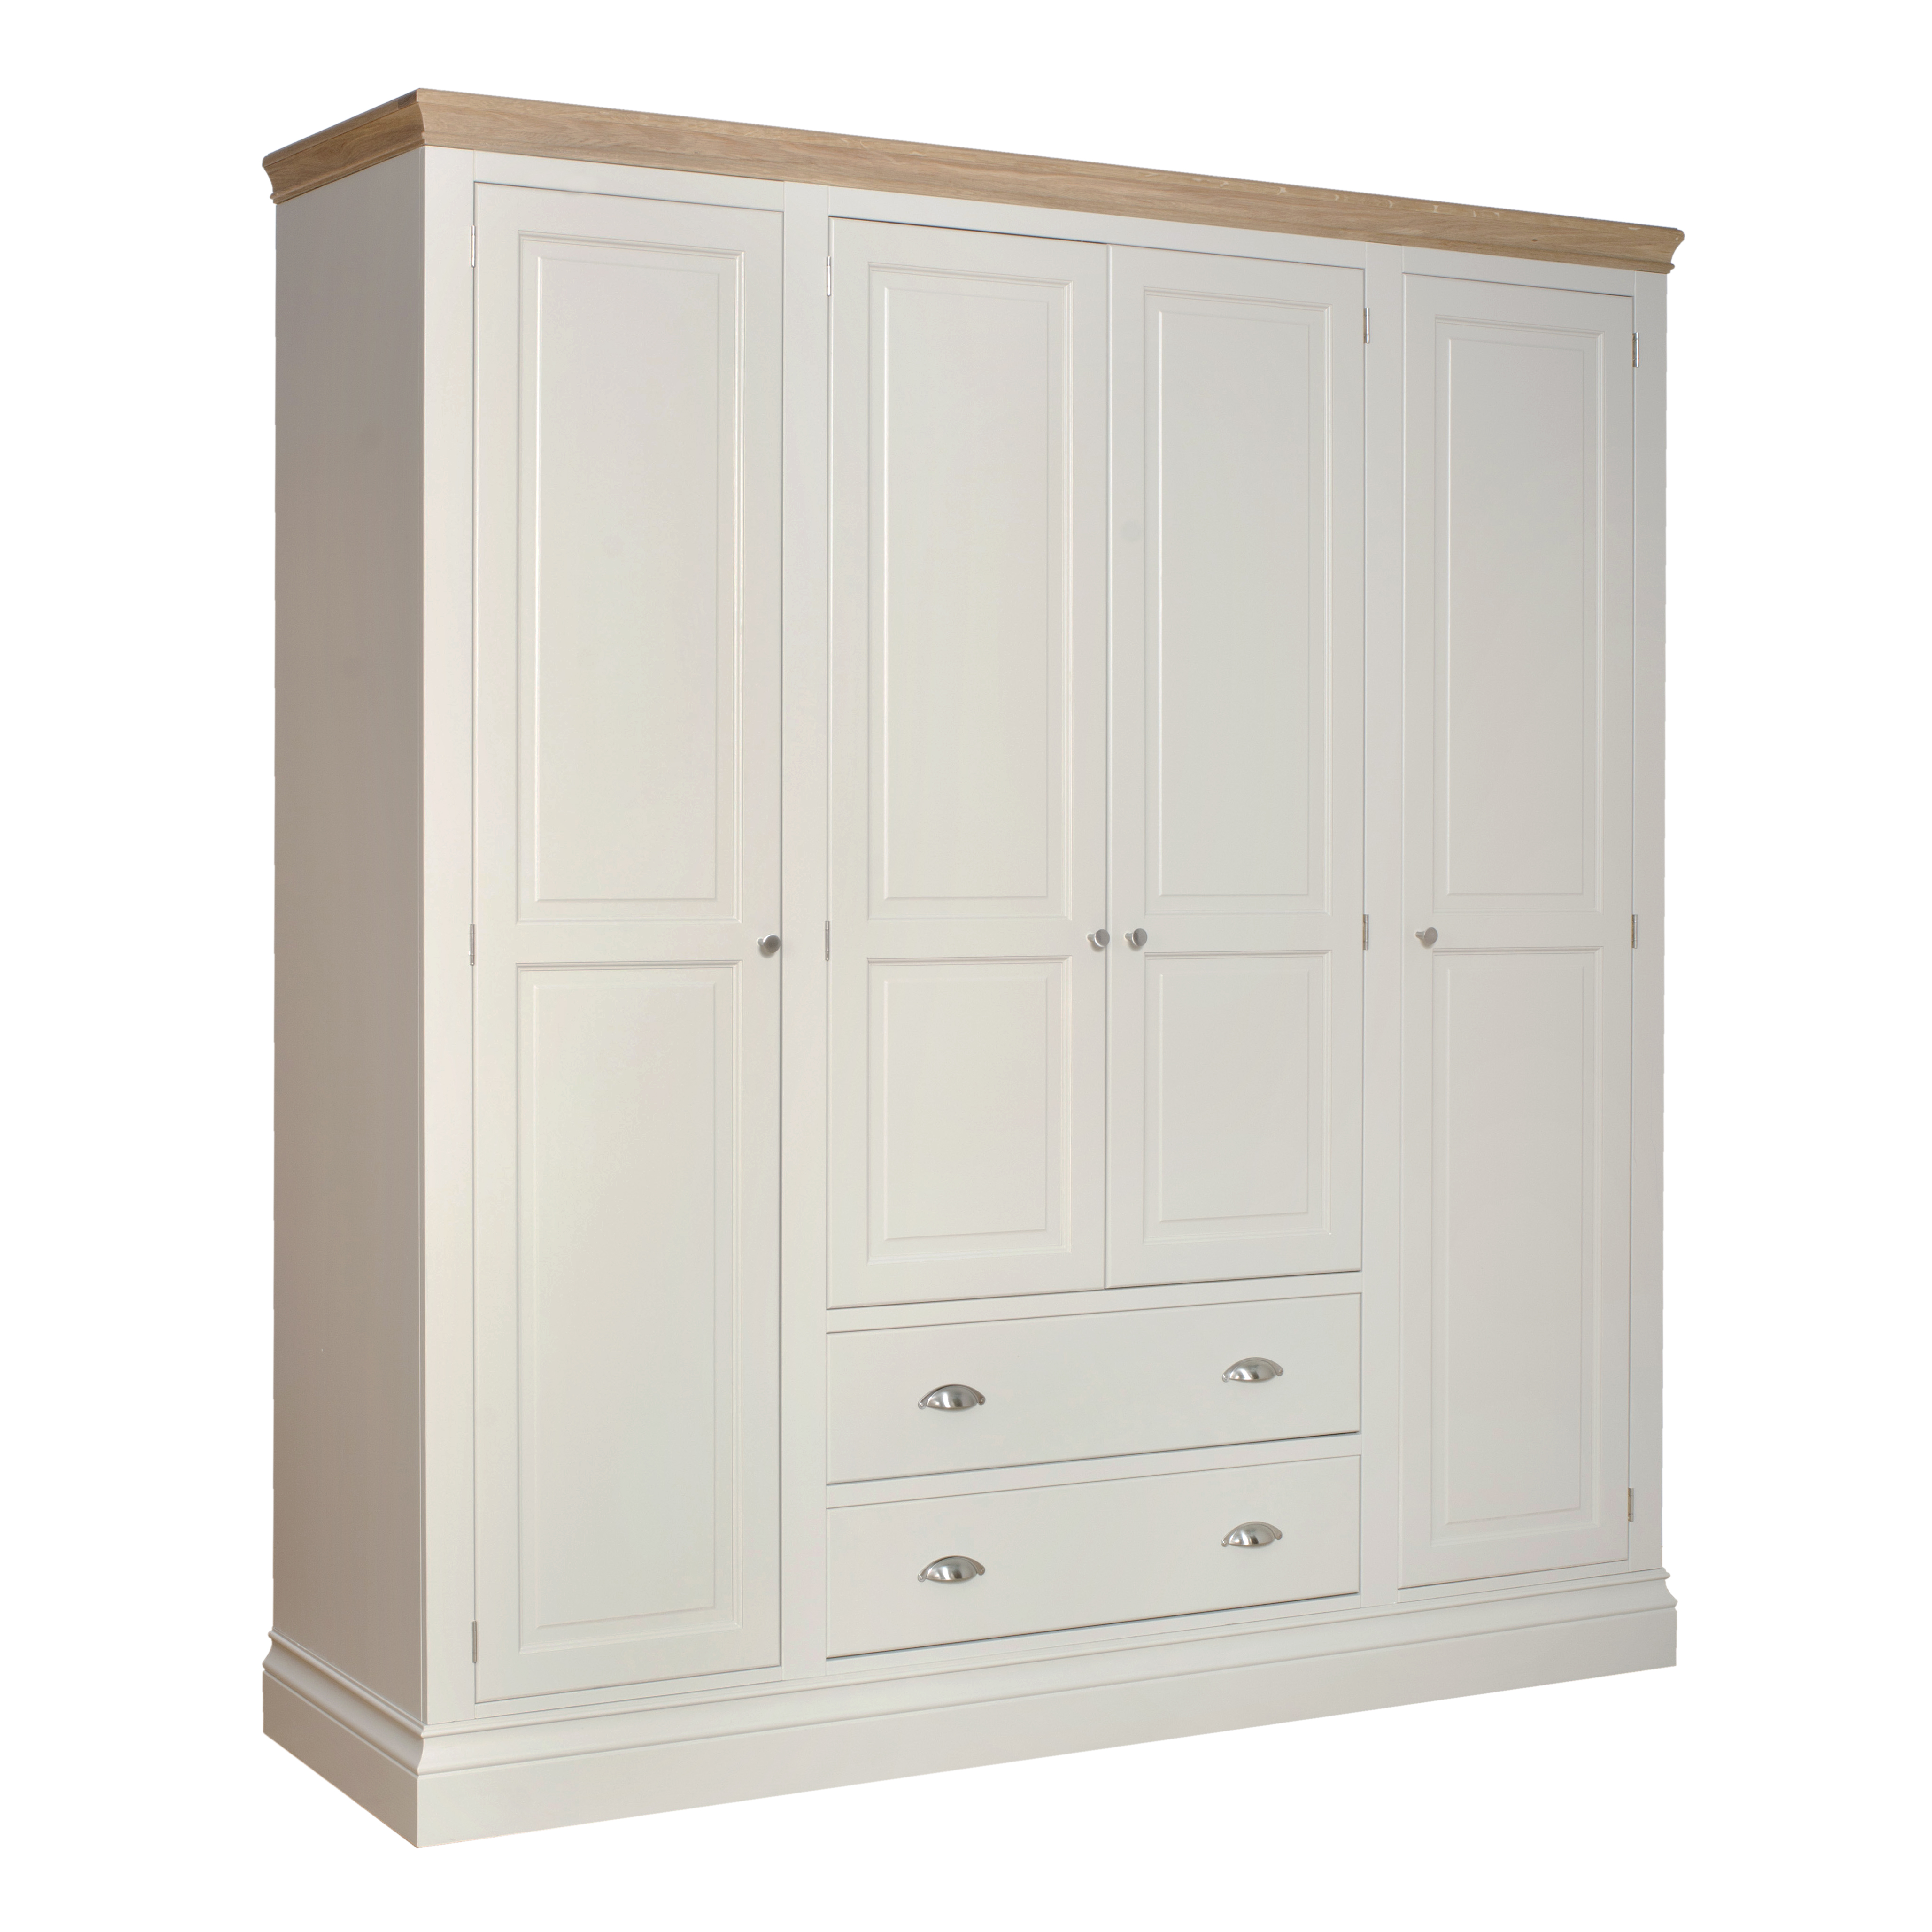 Lundy Painted & Oak Quad Wardrobe with 2 Drawers 110612303733255